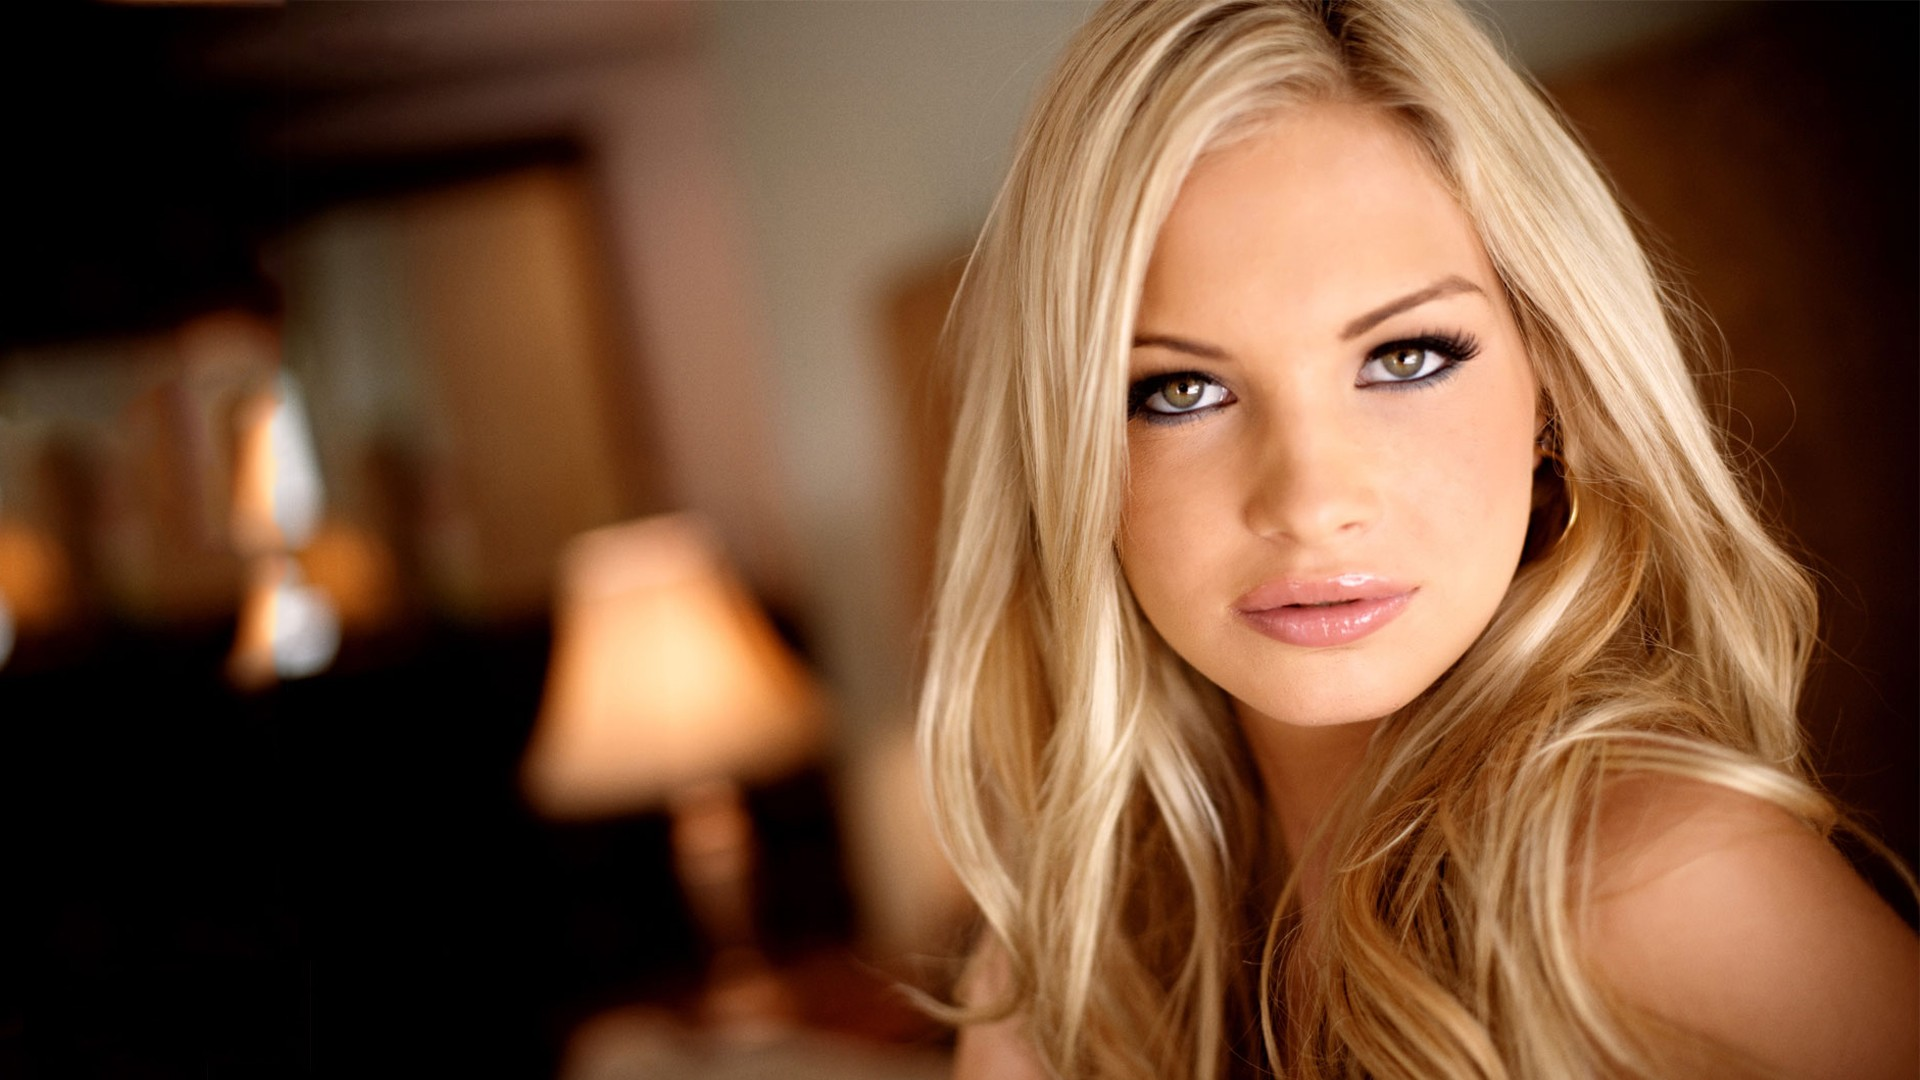 Beautiful Women Pictures and Wallpapers